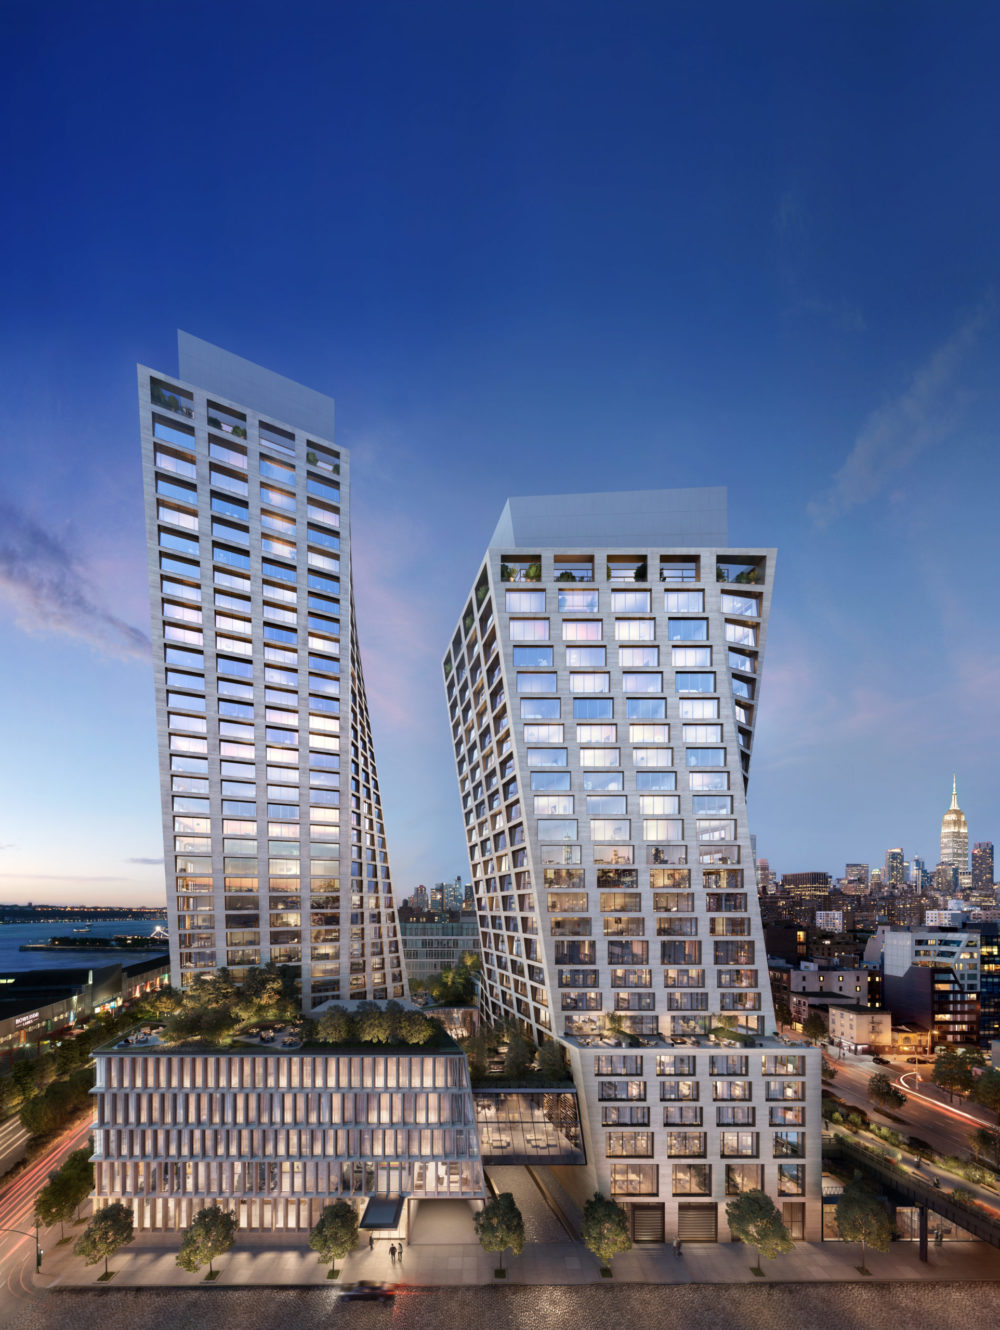 Exterior view of The Xi luxury condos in New York. Two towers of glass and travertine with the city in the distance at dusk.